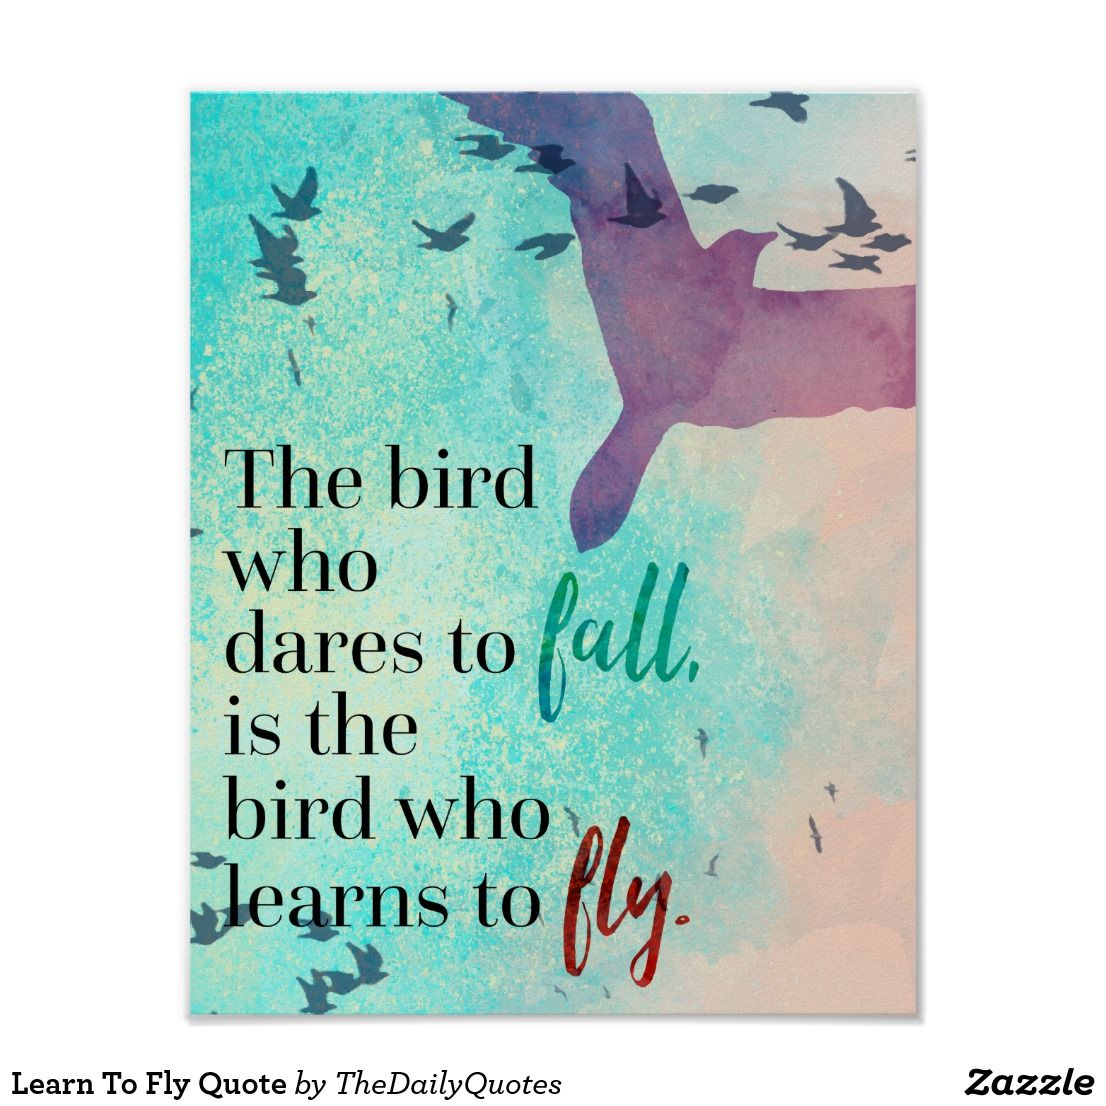 Learn To Fly Quote Poster | Zazzle com | sayings | Fly